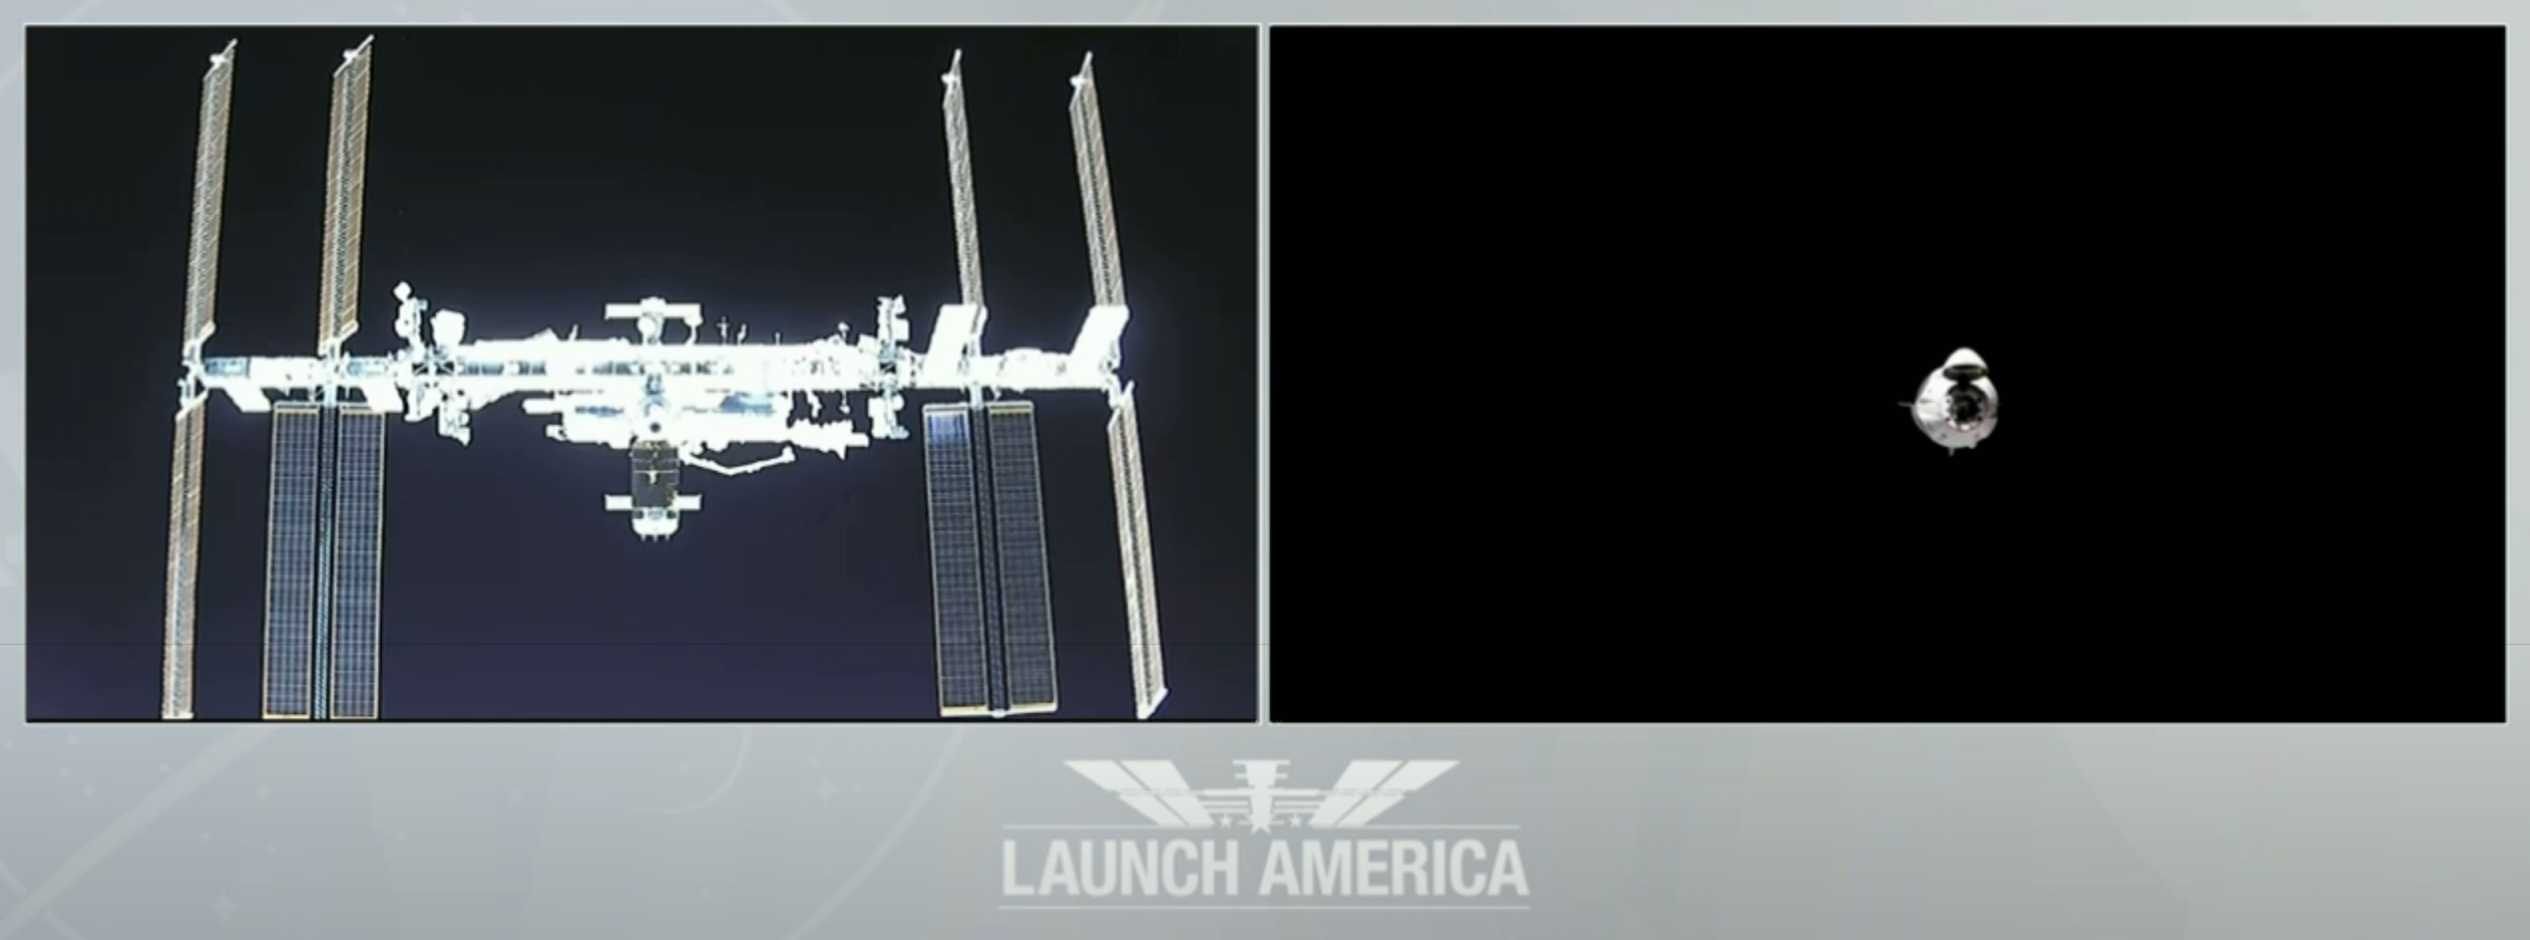 Crew Dragon C206 F9 B1058 Demo-2 053120 ISS arrival webcast (SpaceX) 7 (c)